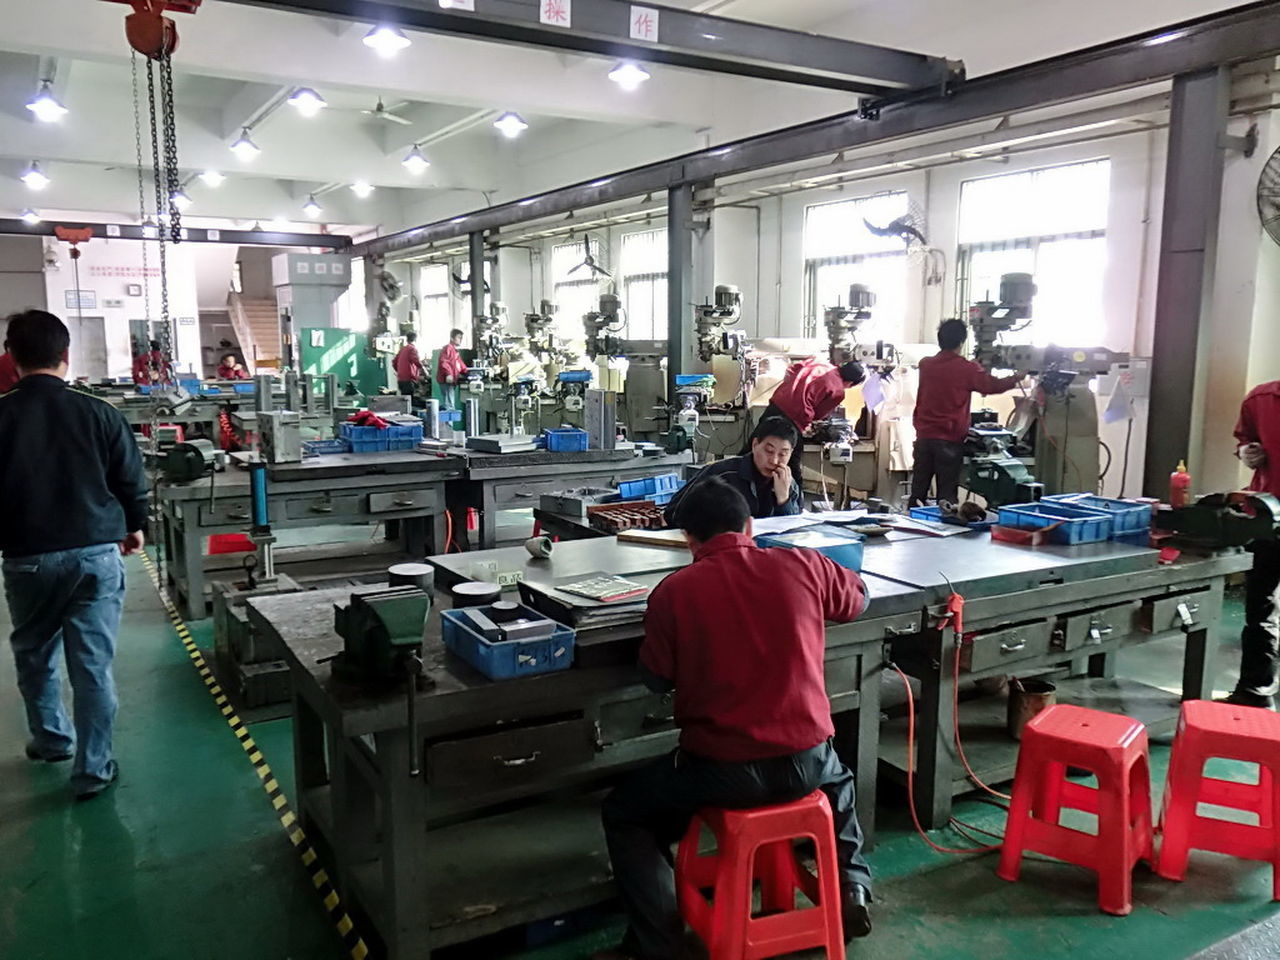 Factory inspection in ShenZhen Business Factory Factory Workers Manufacturing Equipment Manufacturing Plant